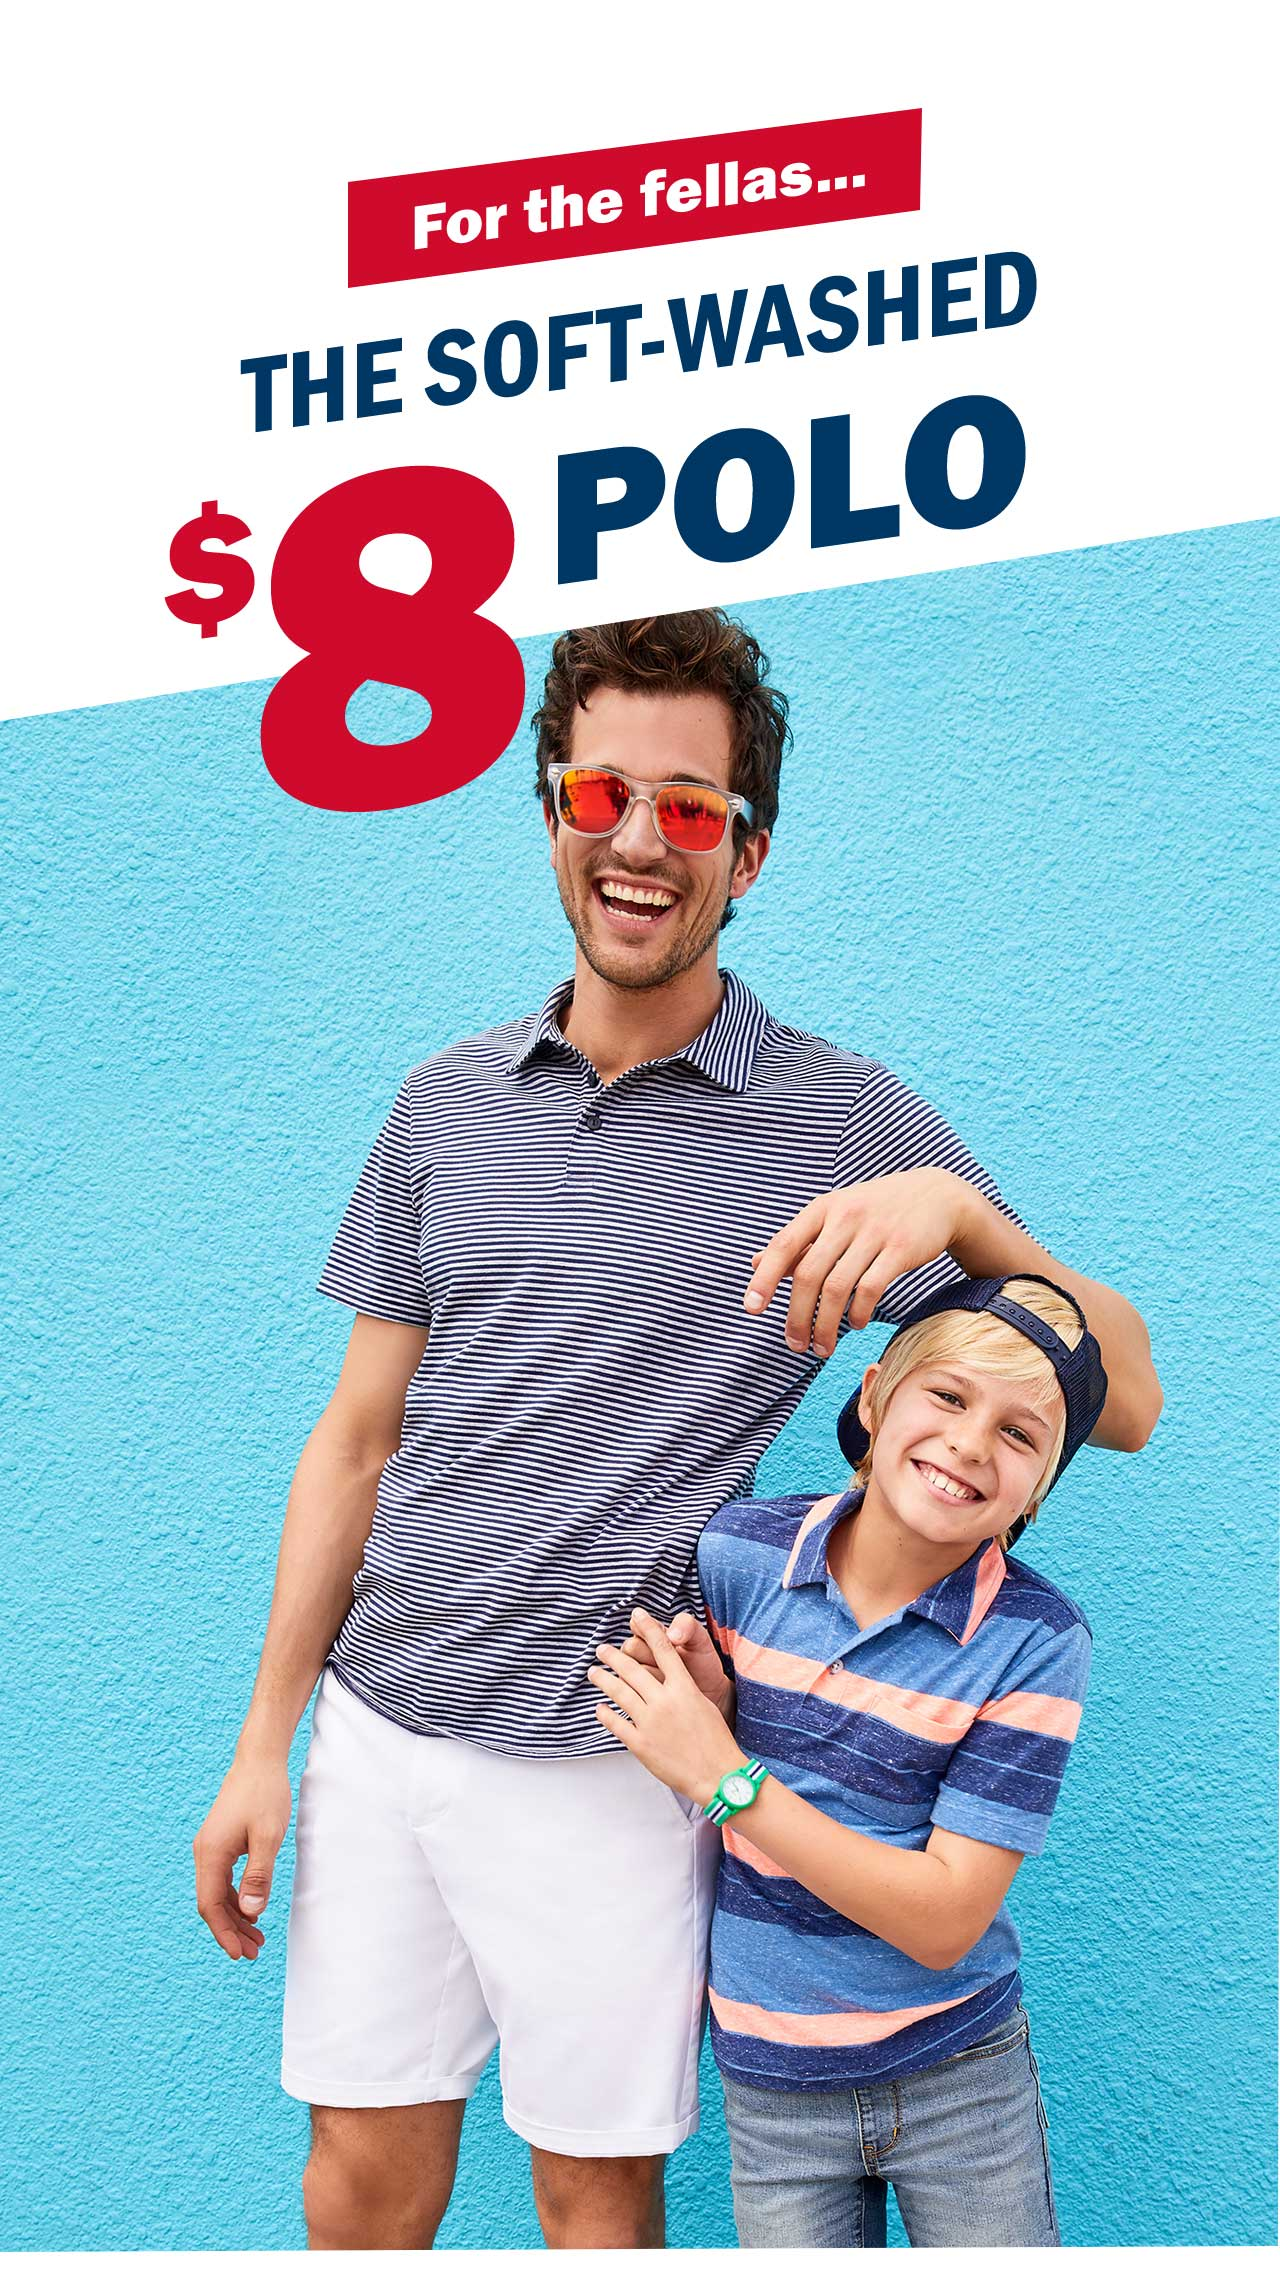 THE SOFT-WASHED $8 POLO